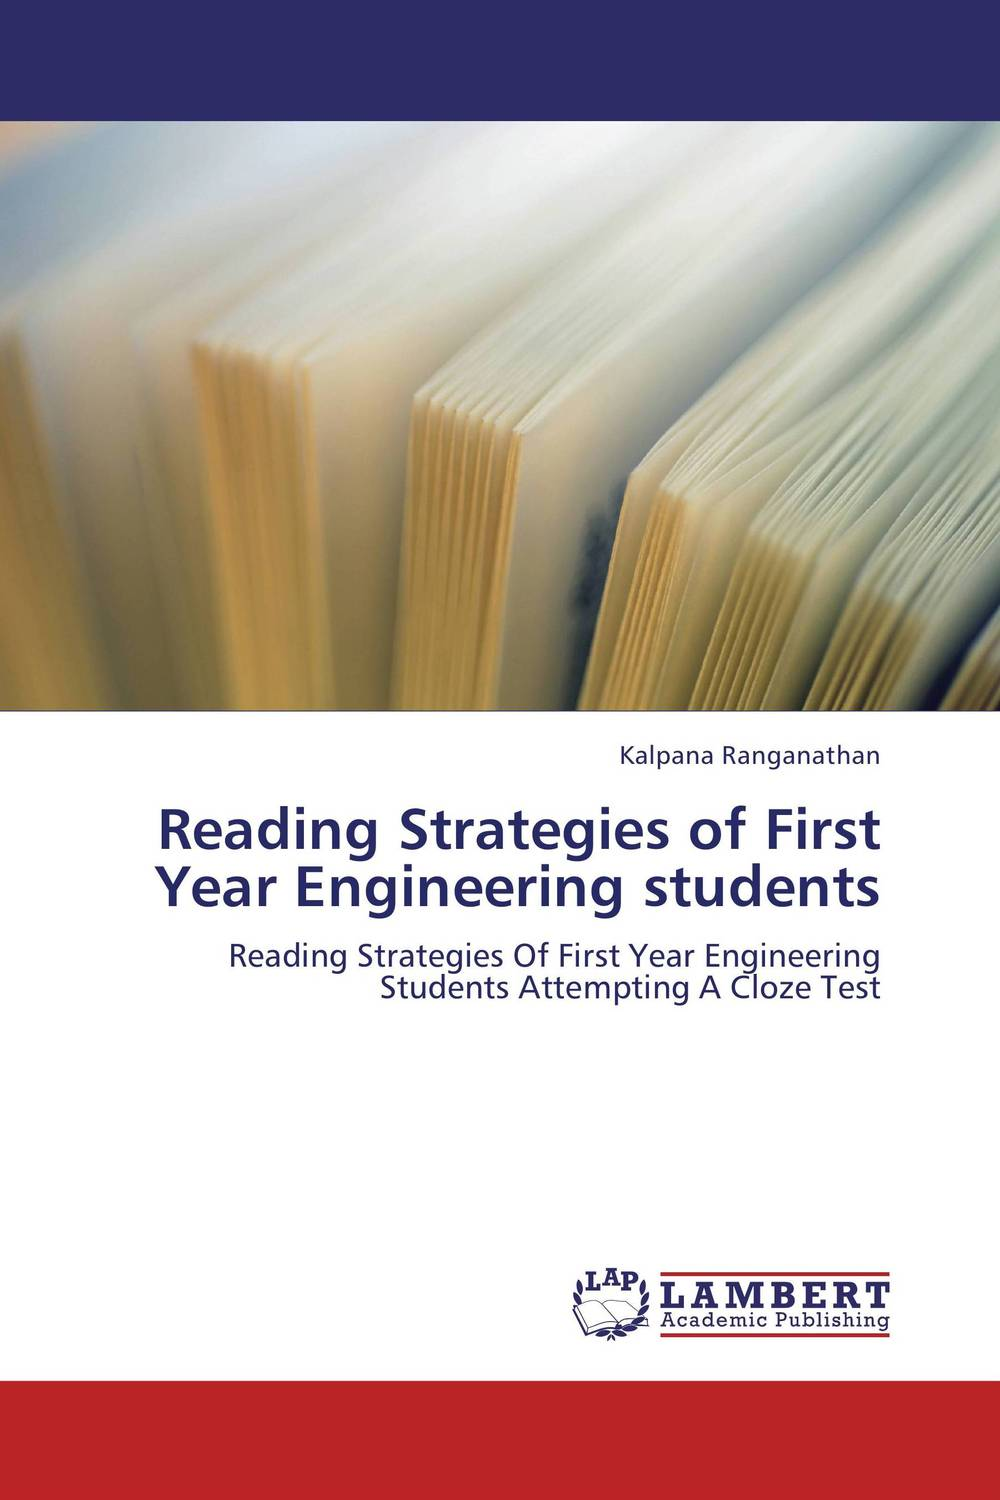 Reading Strategies of First Year Engineering students cassandra c green the effectiveness of a first year learning strategies seminar